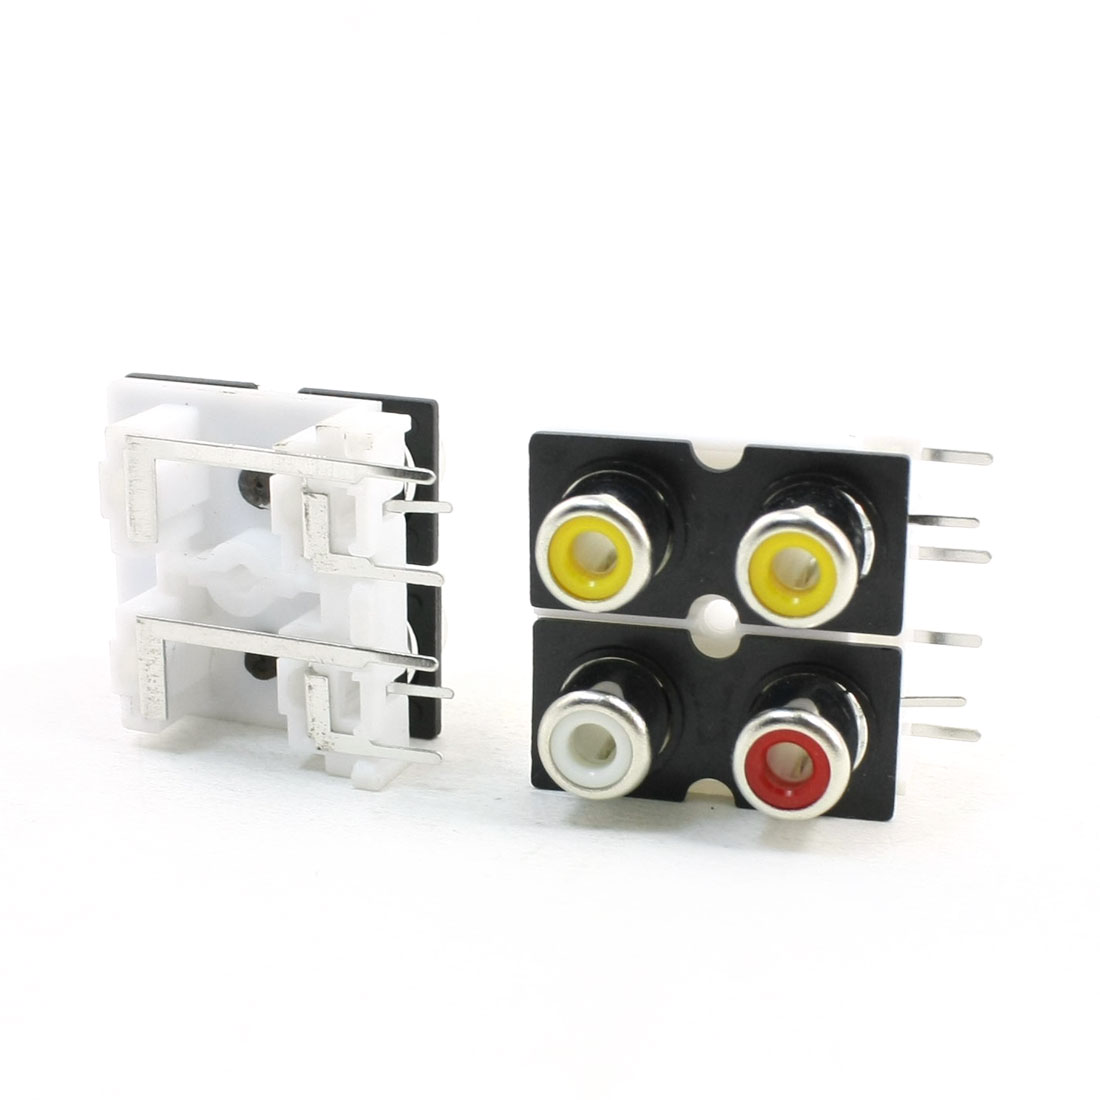 2Pcs RCA-410 PCB Mounted A/V Concentric Outlet 4RCA Female Jack Socket